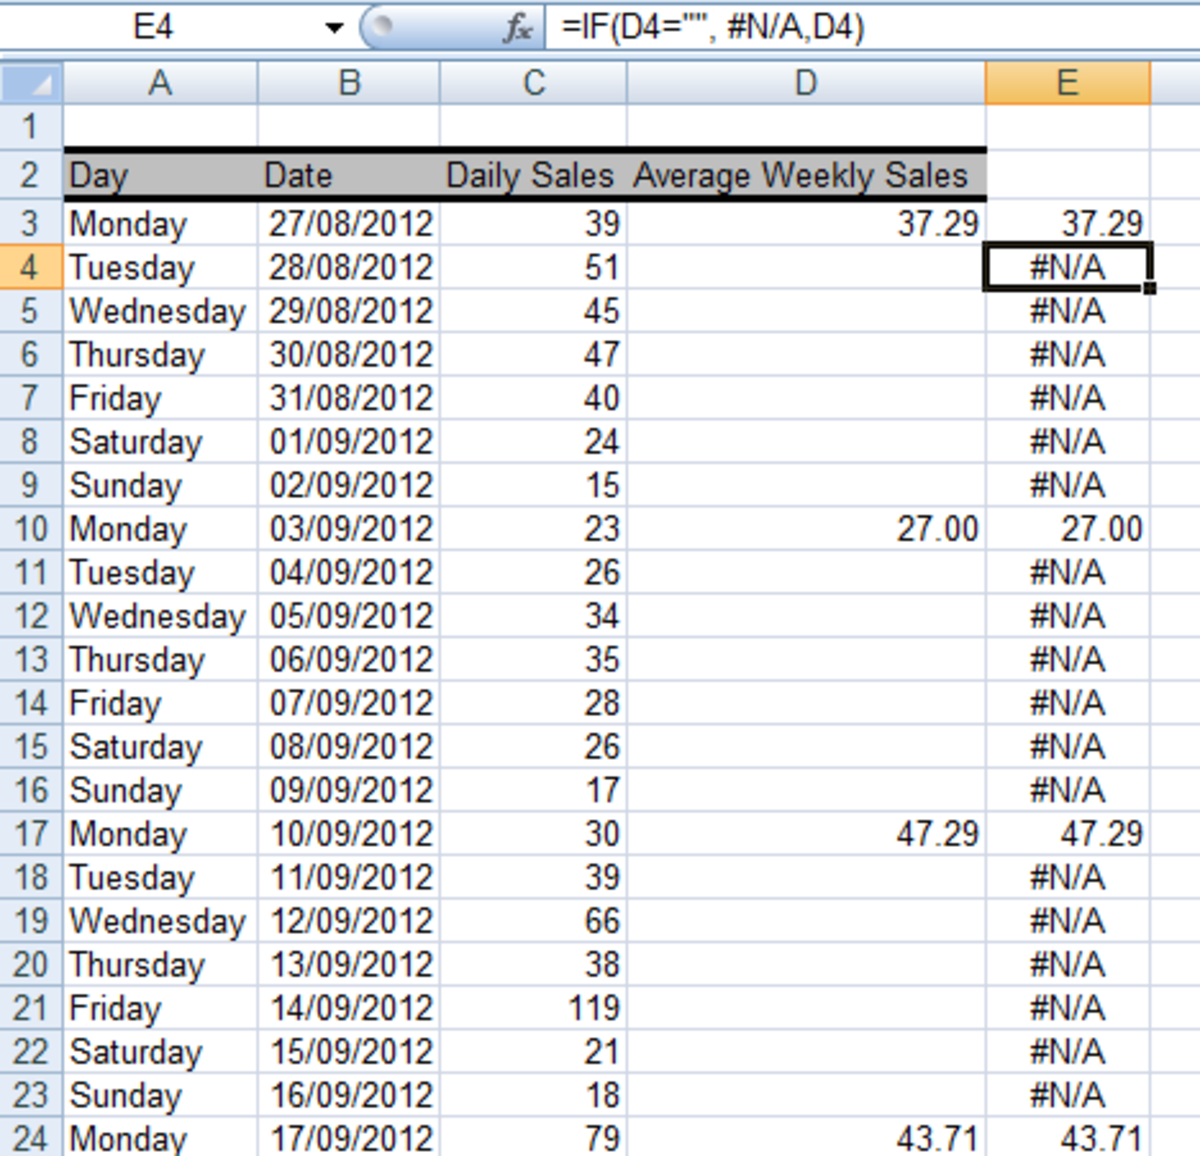 Ediblewildsus  Pleasant How To Get Excel  And  To Ignore Empty Cells In A Chart Or  With Likable Using The If Function In A Formula To Convert Empty Cells To Na With Divine Bell Curve In Excel Also Slicer Excel  In Addition Using If In Excel And Excel Custom Number Format As Well As Cannot Save Excel File Additionally Excel Center Indianapolis From Turbofuturecom With Ediblewildsus  Likable How To Get Excel  And  To Ignore Empty Cells In A Chart Or  With Divine Using The If Function In A Formula To Convert Empty Cells To Na And Pleasant Bell Curve In Excel Also Slicer Excel  In Addition Using If In Excel From Turbofuturecom